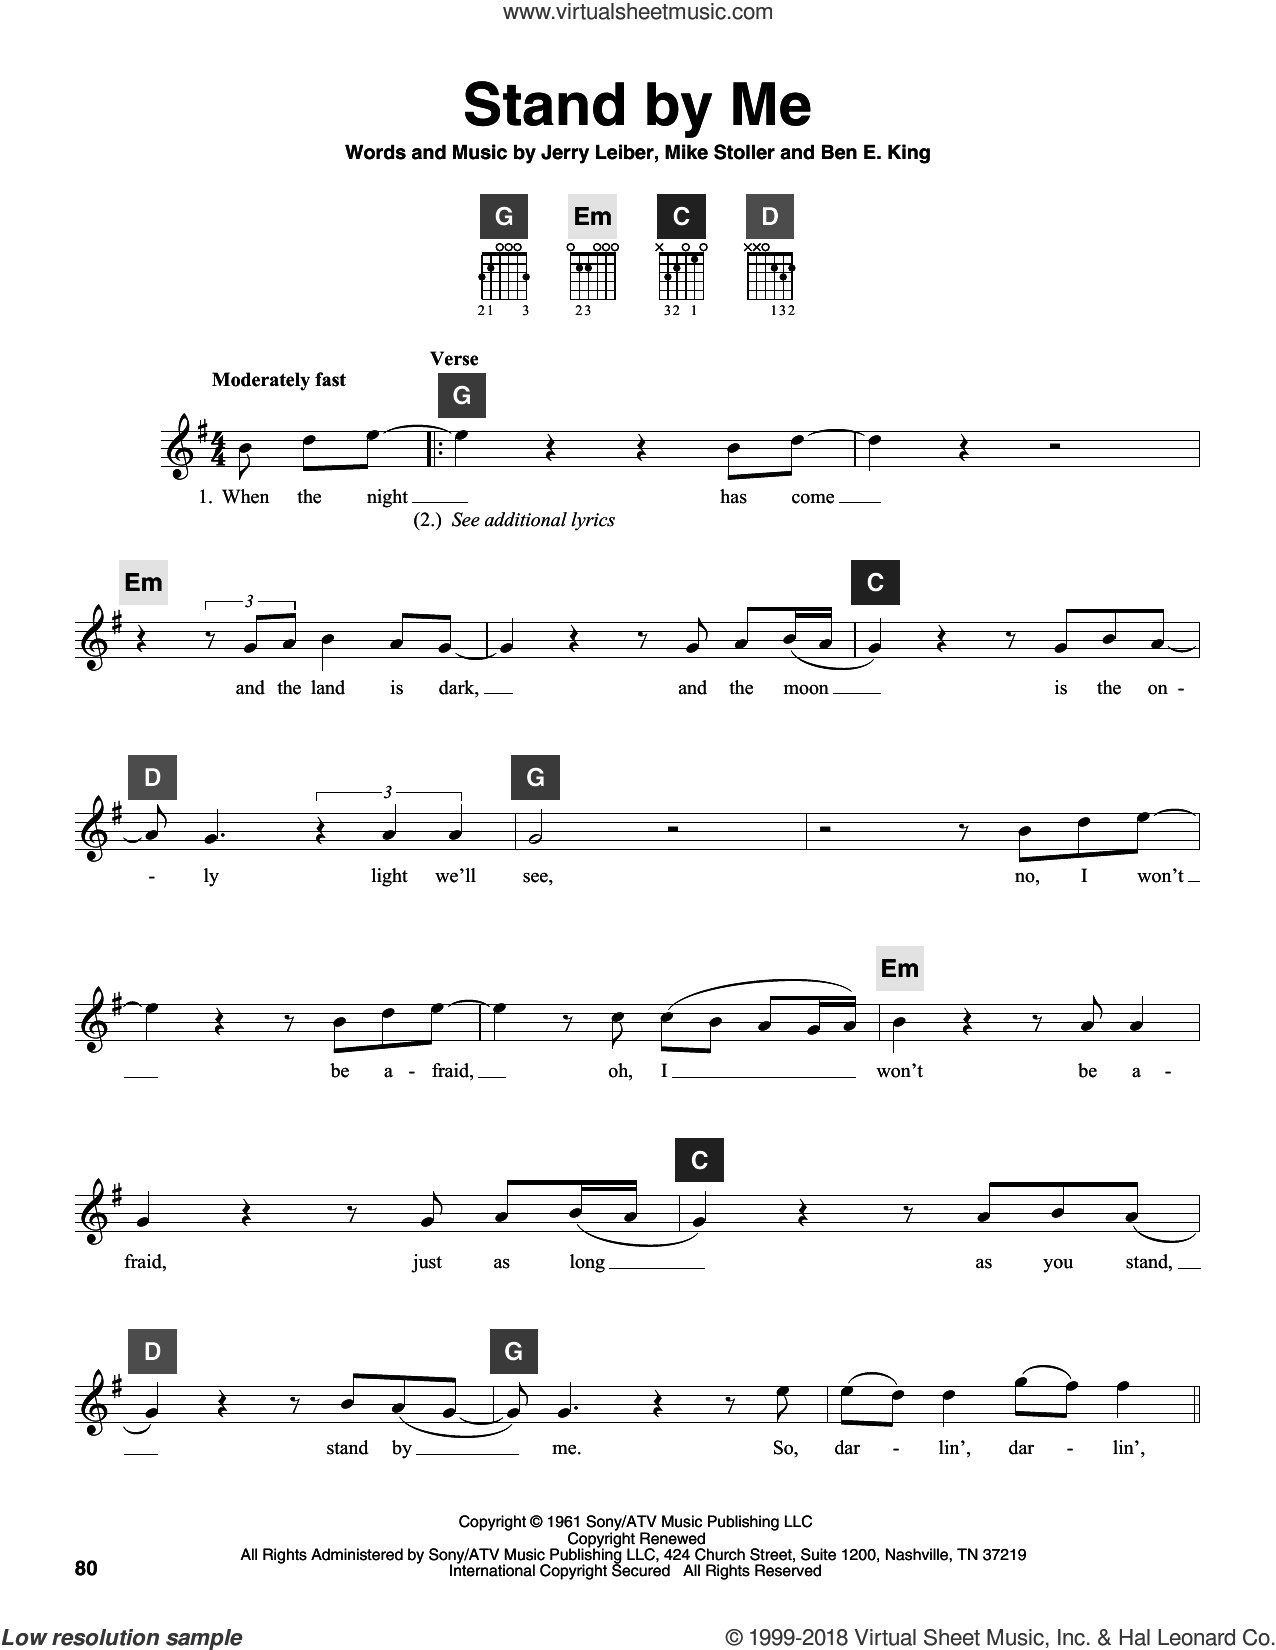 Stand by me barbershop quartet sheet music download free in pdf or.